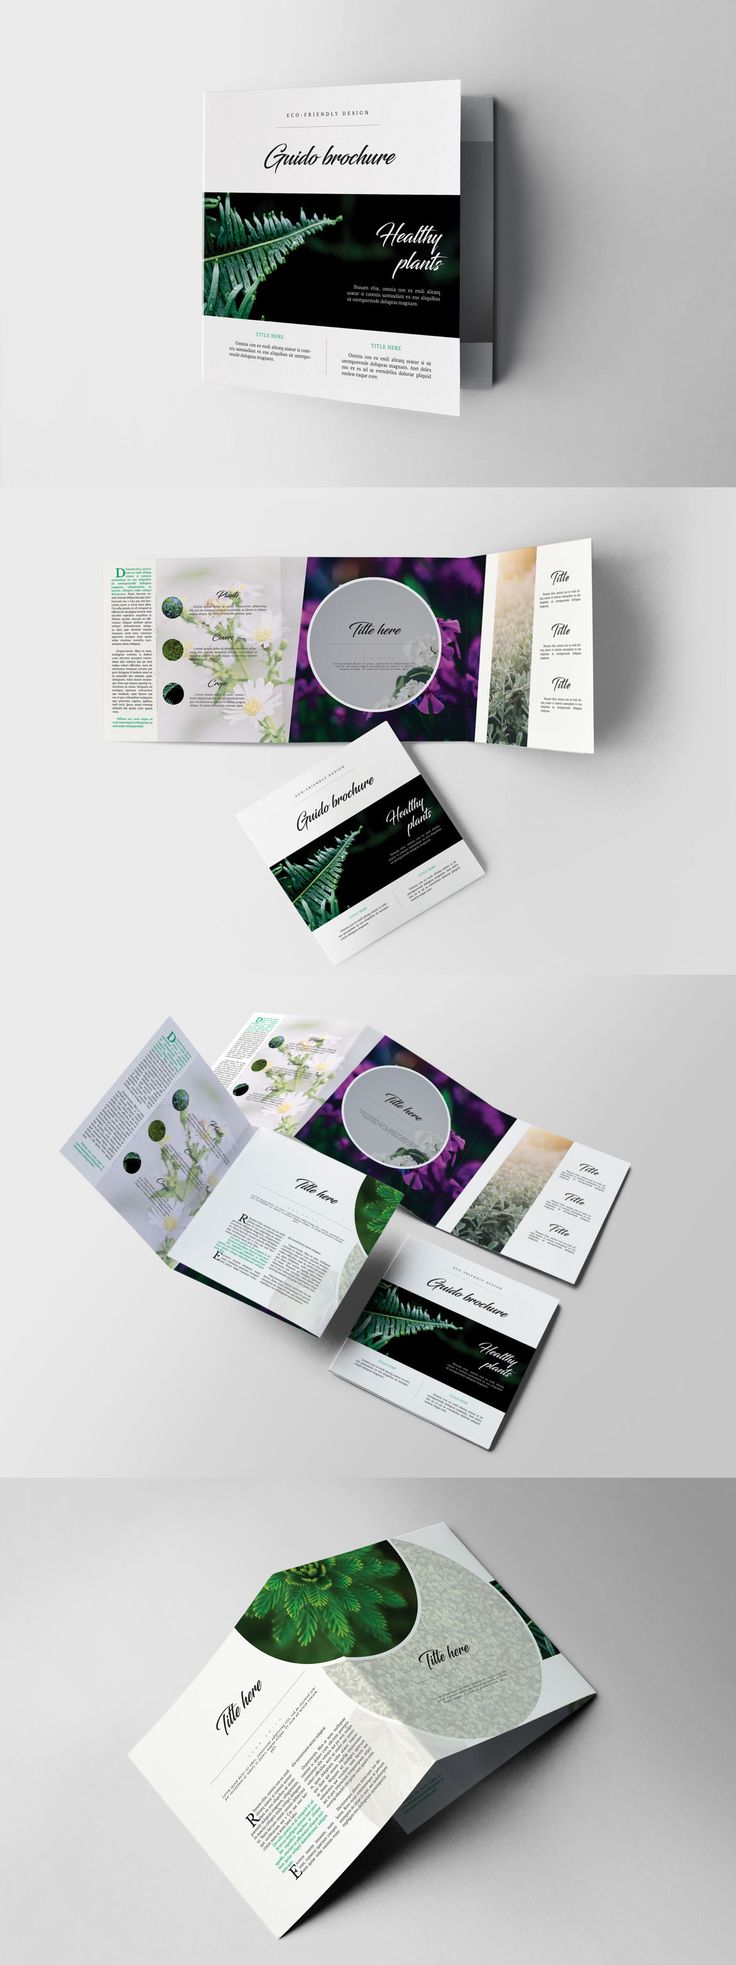 Best BiFold Brochure Images On Pinterest Bi Fold Brochure - Brochure template indesign